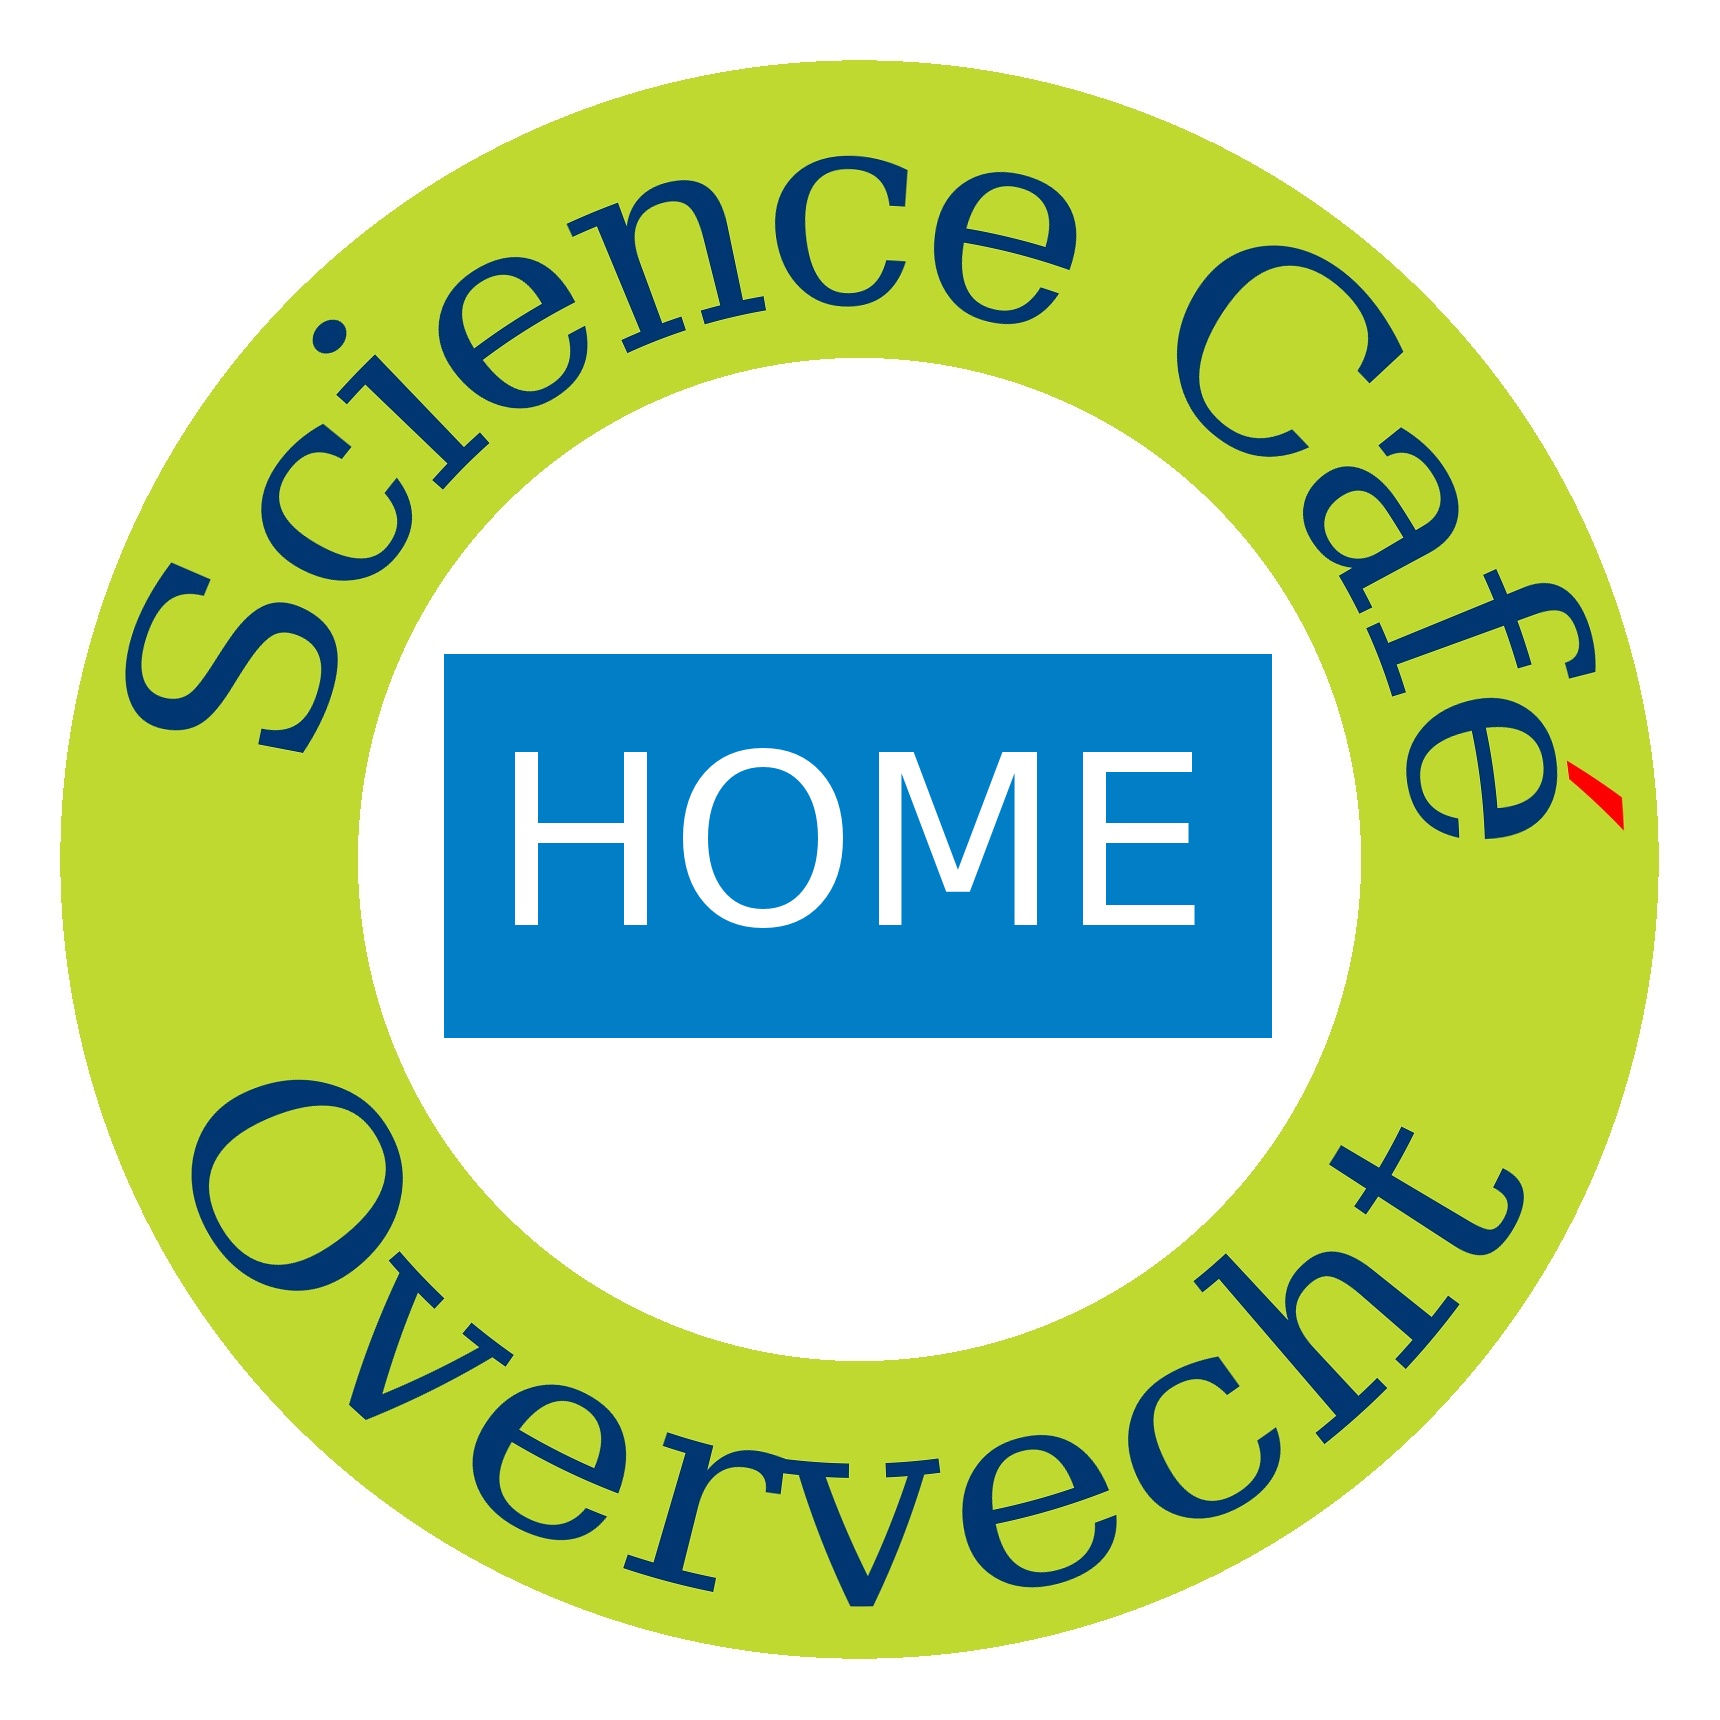 http://www.sciencecafeovervecht.nl/COVID-19/logo-science-cafe-overvecht-home.jpg